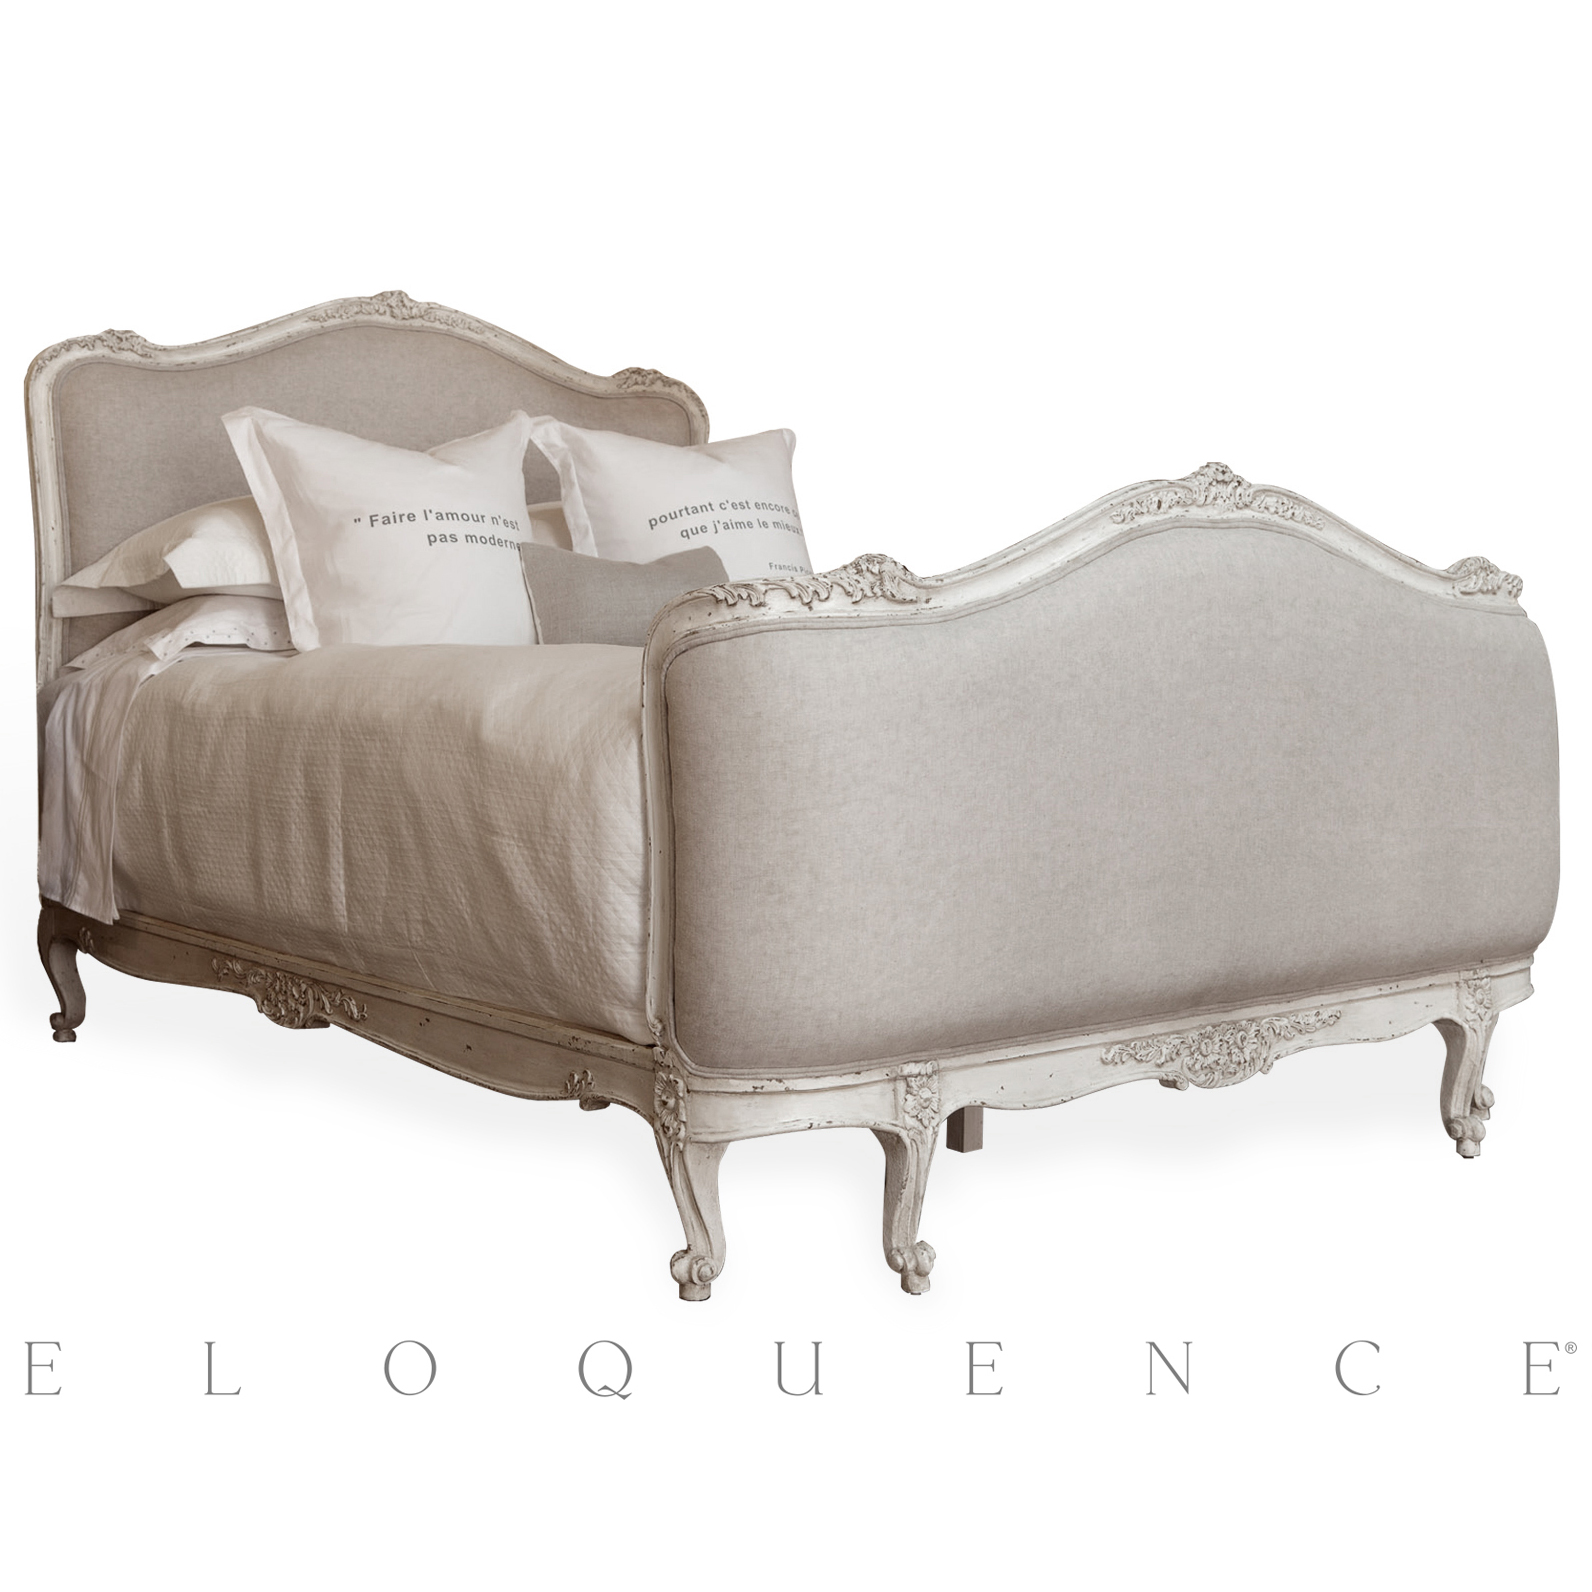 Eloquence® Sophia Queen Bed in Antique White